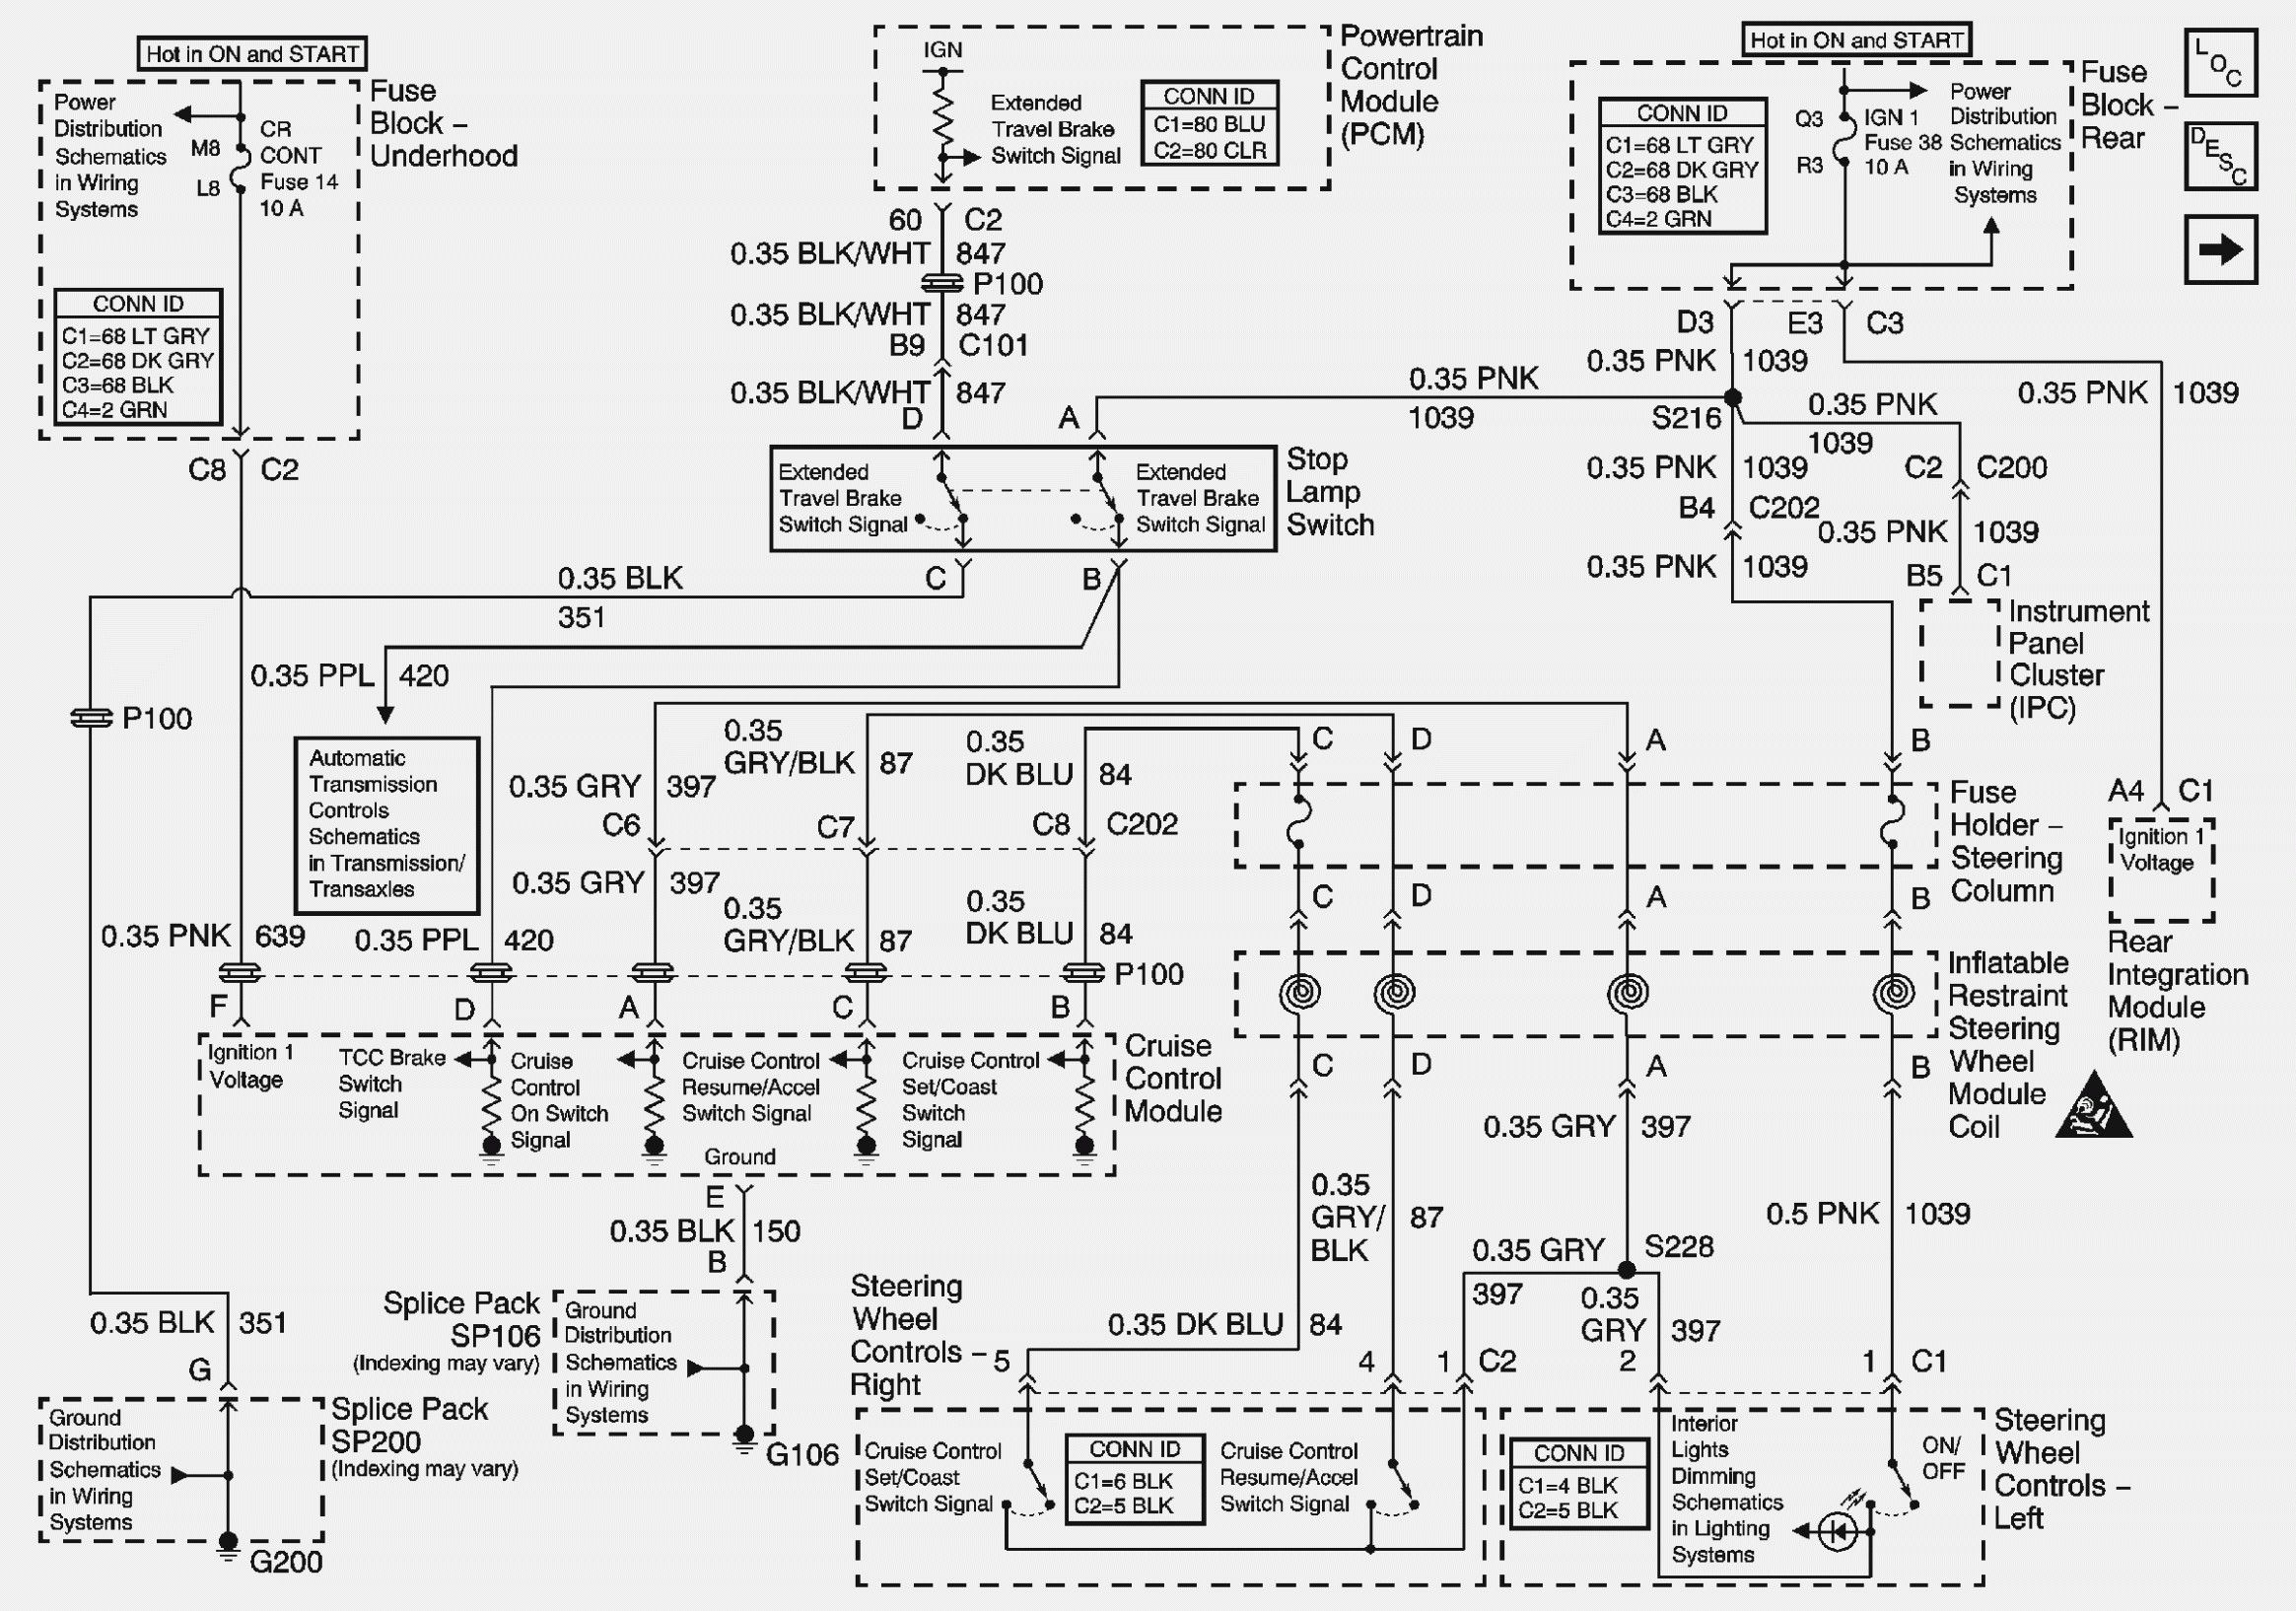 1998 Audi A4 Wiring Diagram - wiring diagram ground-select -  ground-select.hoteloctavia.it | 1998 Audi A4 Wiring Diagram |  | hoteloctavia.it